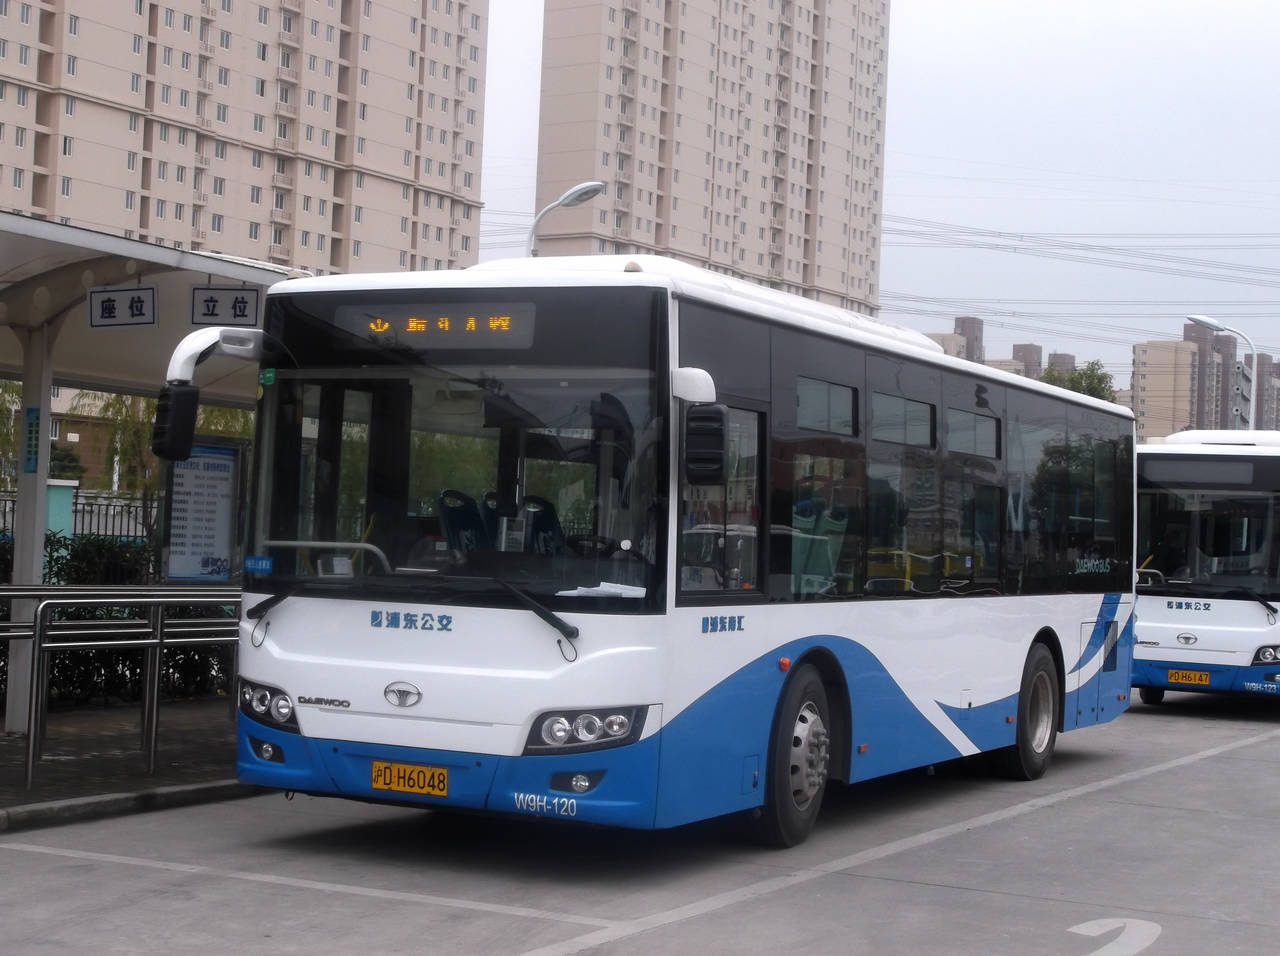 Buses in Shanghai - Wikipedia